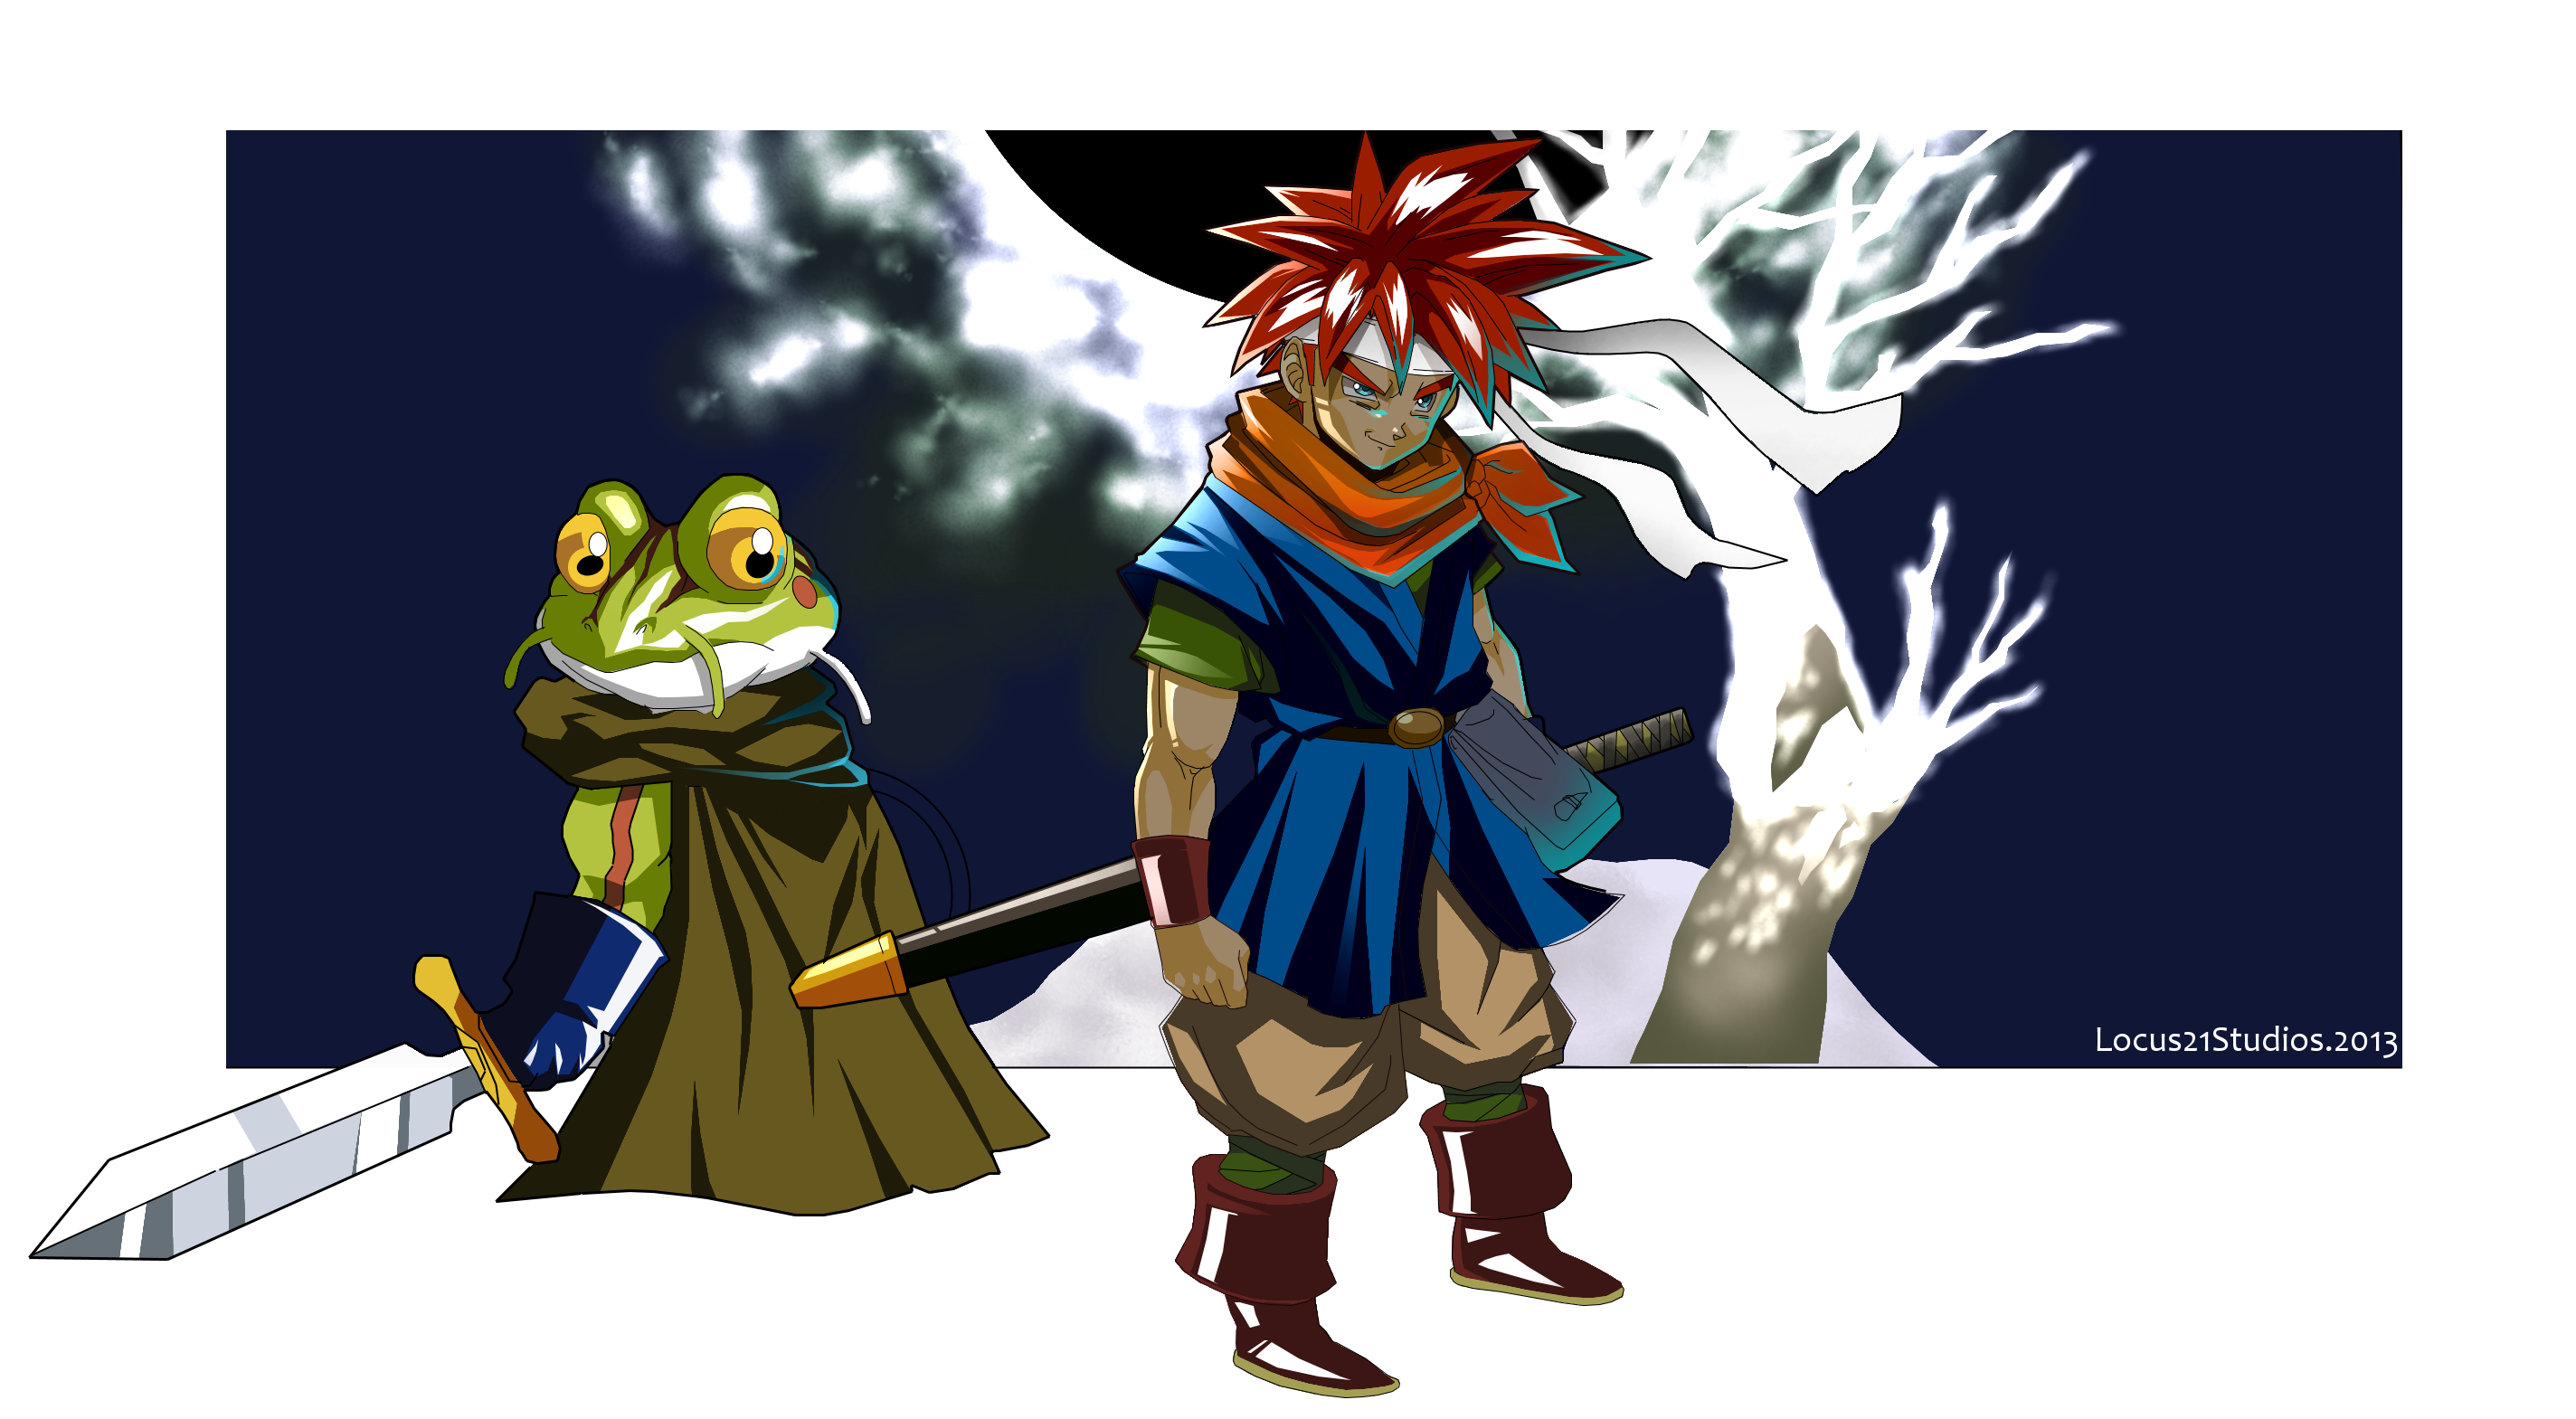 Chrono Trigger Death Peak by locus21 on DeviantArt